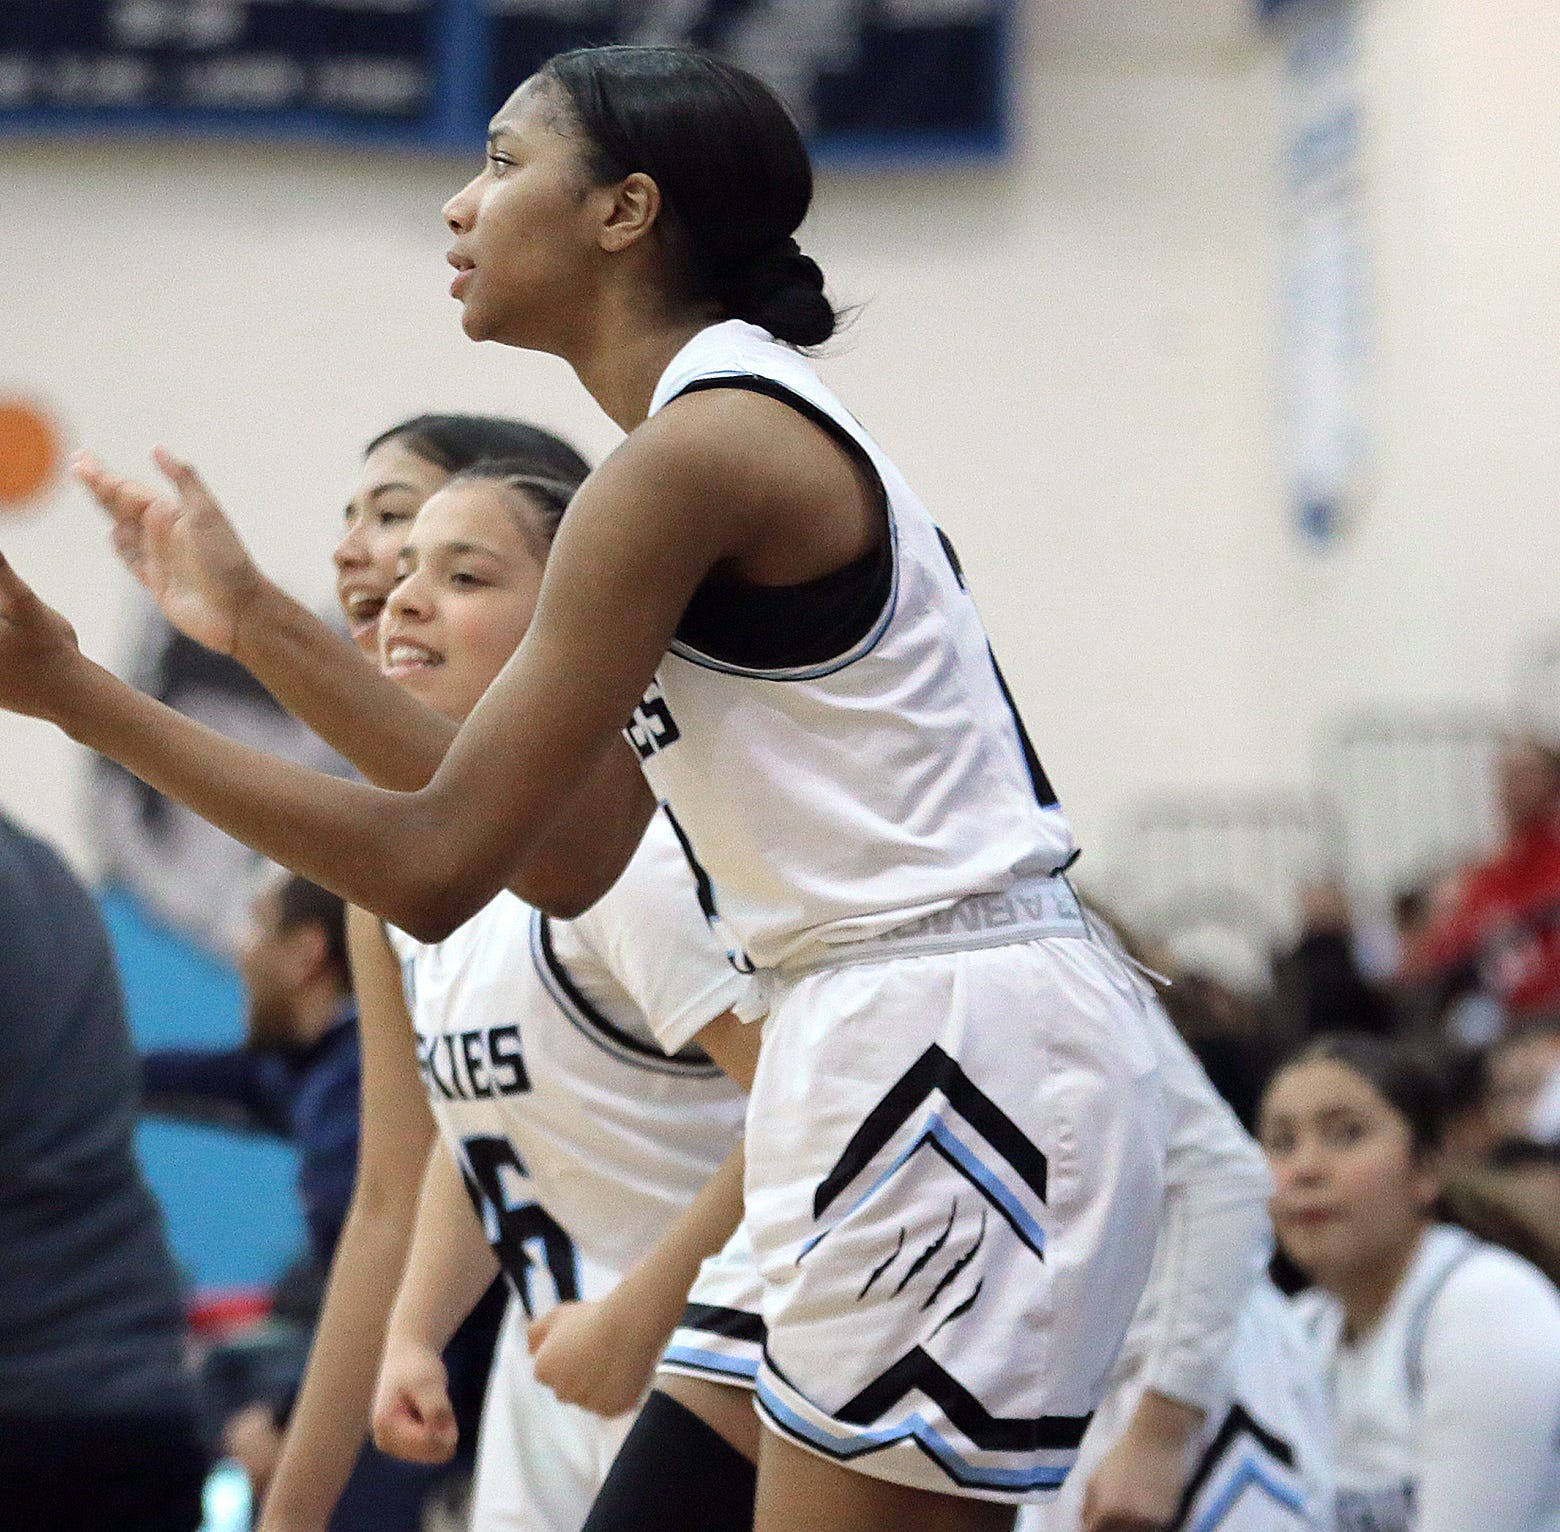 Chapin, Eastlake, Burges advance in girls basketball playoffs